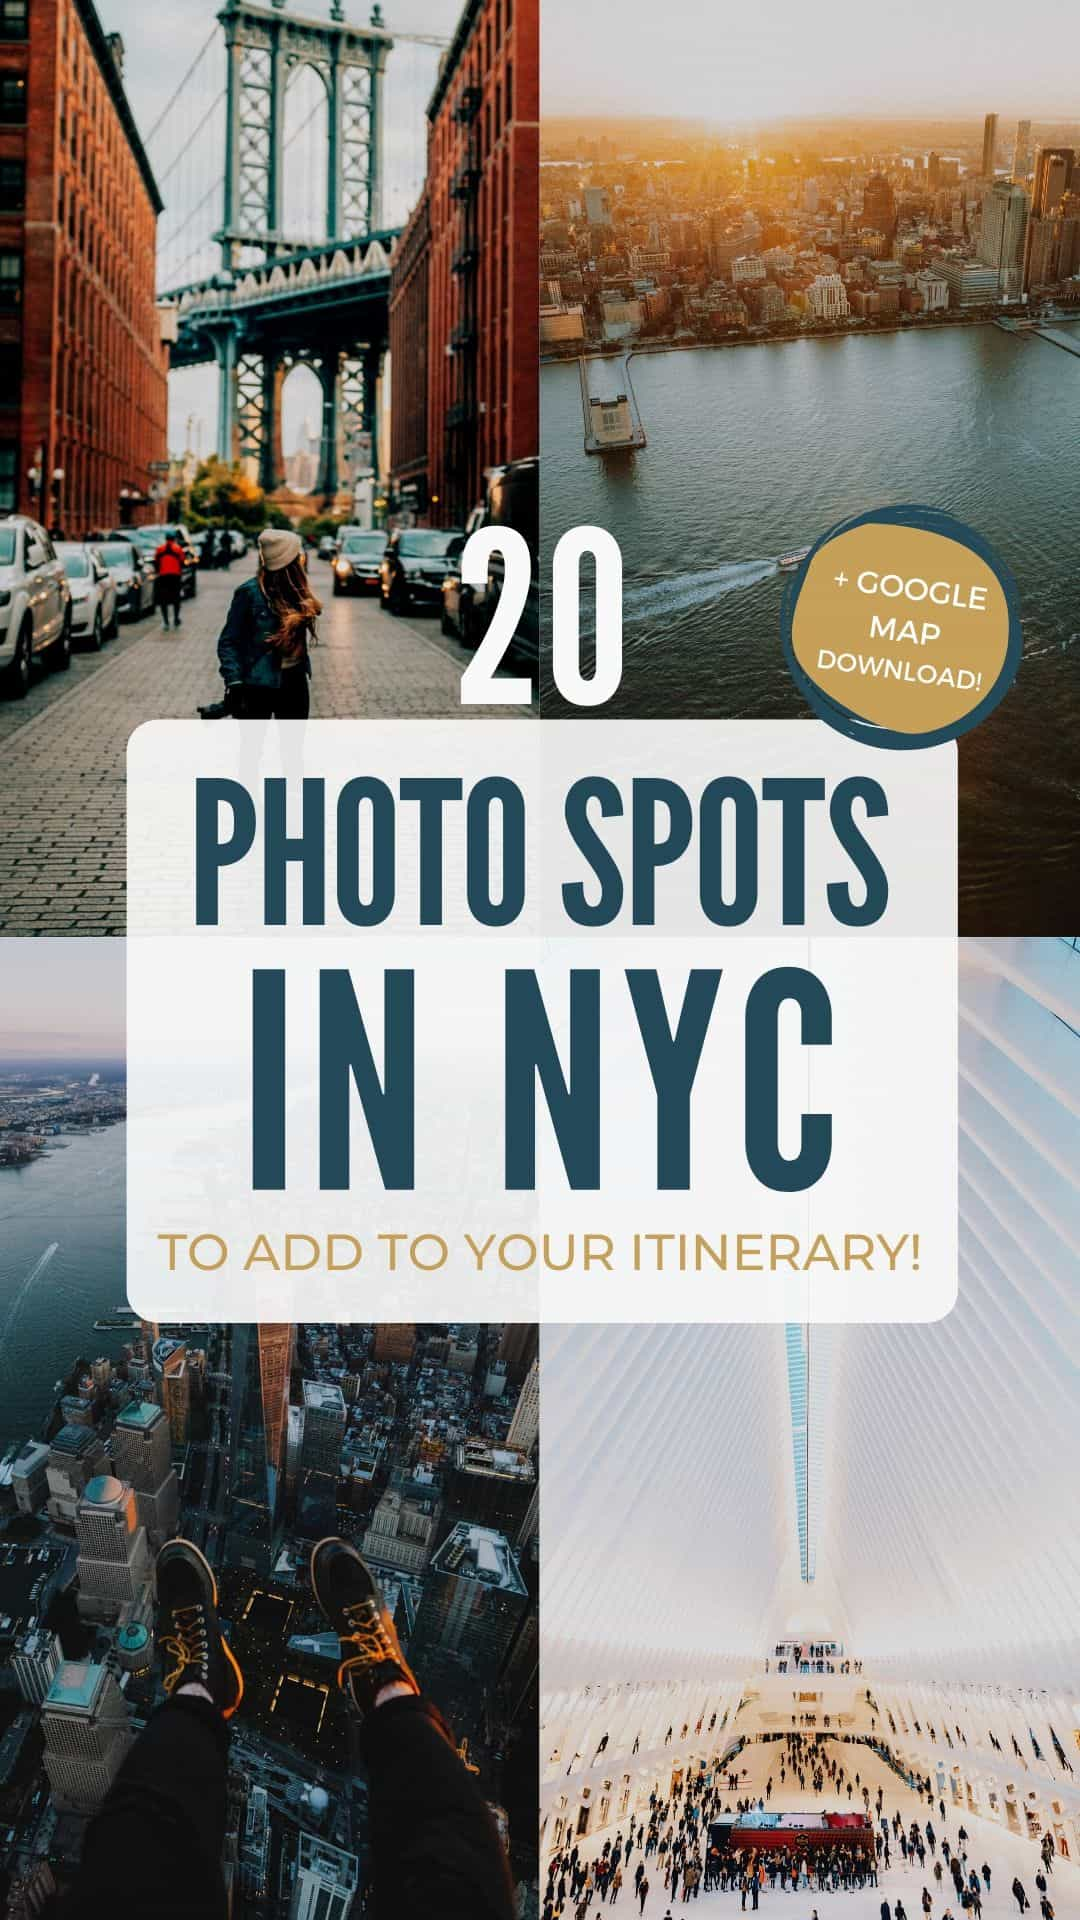 Planning a trip to NYC and ready to take some photos? We're sharing the best Instagram spots in NYC, including iconic buildings like The Flatiron Building, Brooklyn Bridge, Empire State Building, and Grand Central Station! Save this post for the best bucket list photography spots in NYC to plan your best trip yet! #instagram #NYC #newyorkcity #photography #NewYorkNewYork #Newyork #city #travel #photo #brooklynbridge #grandcentralstation